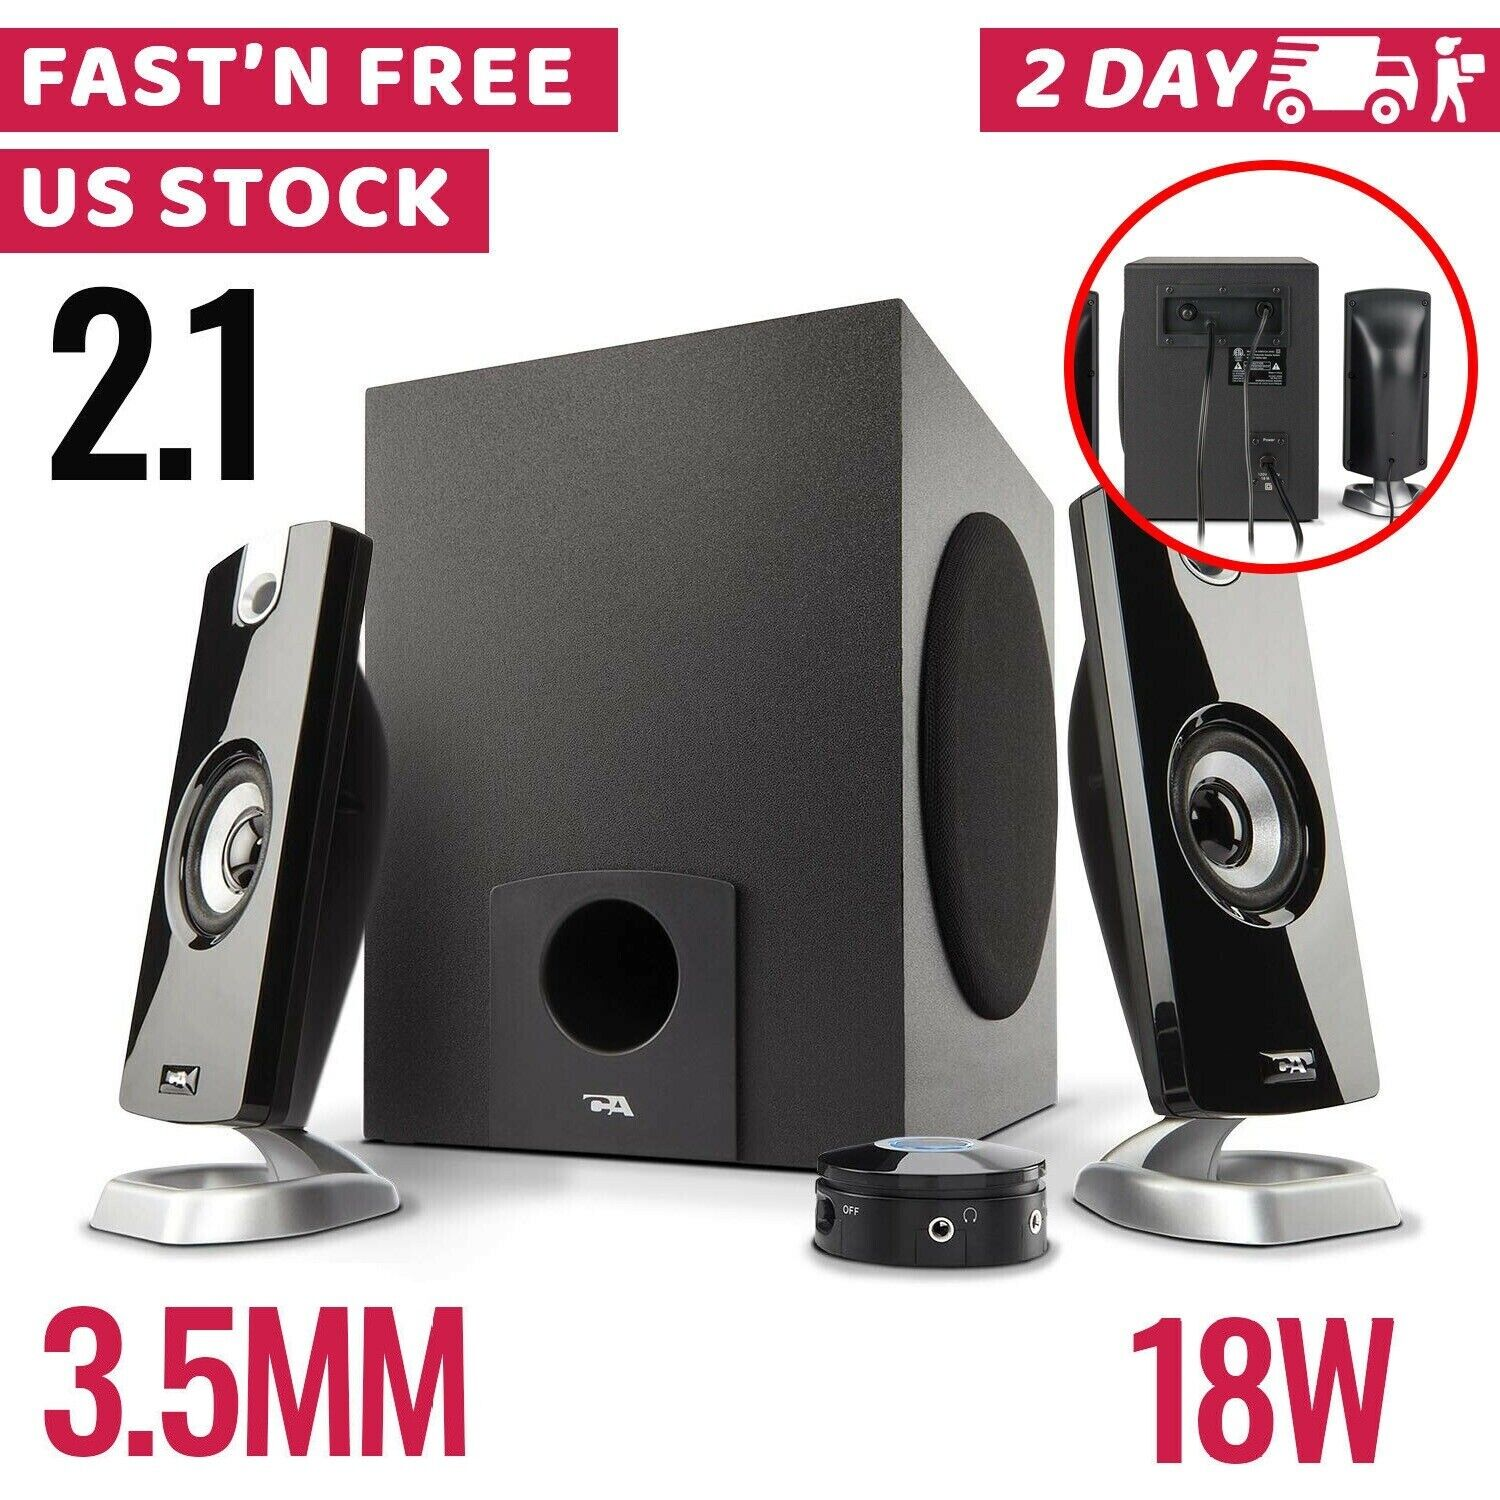 Computer Speakers Gaming USB Powered 2.1 PC Desktop With Sub